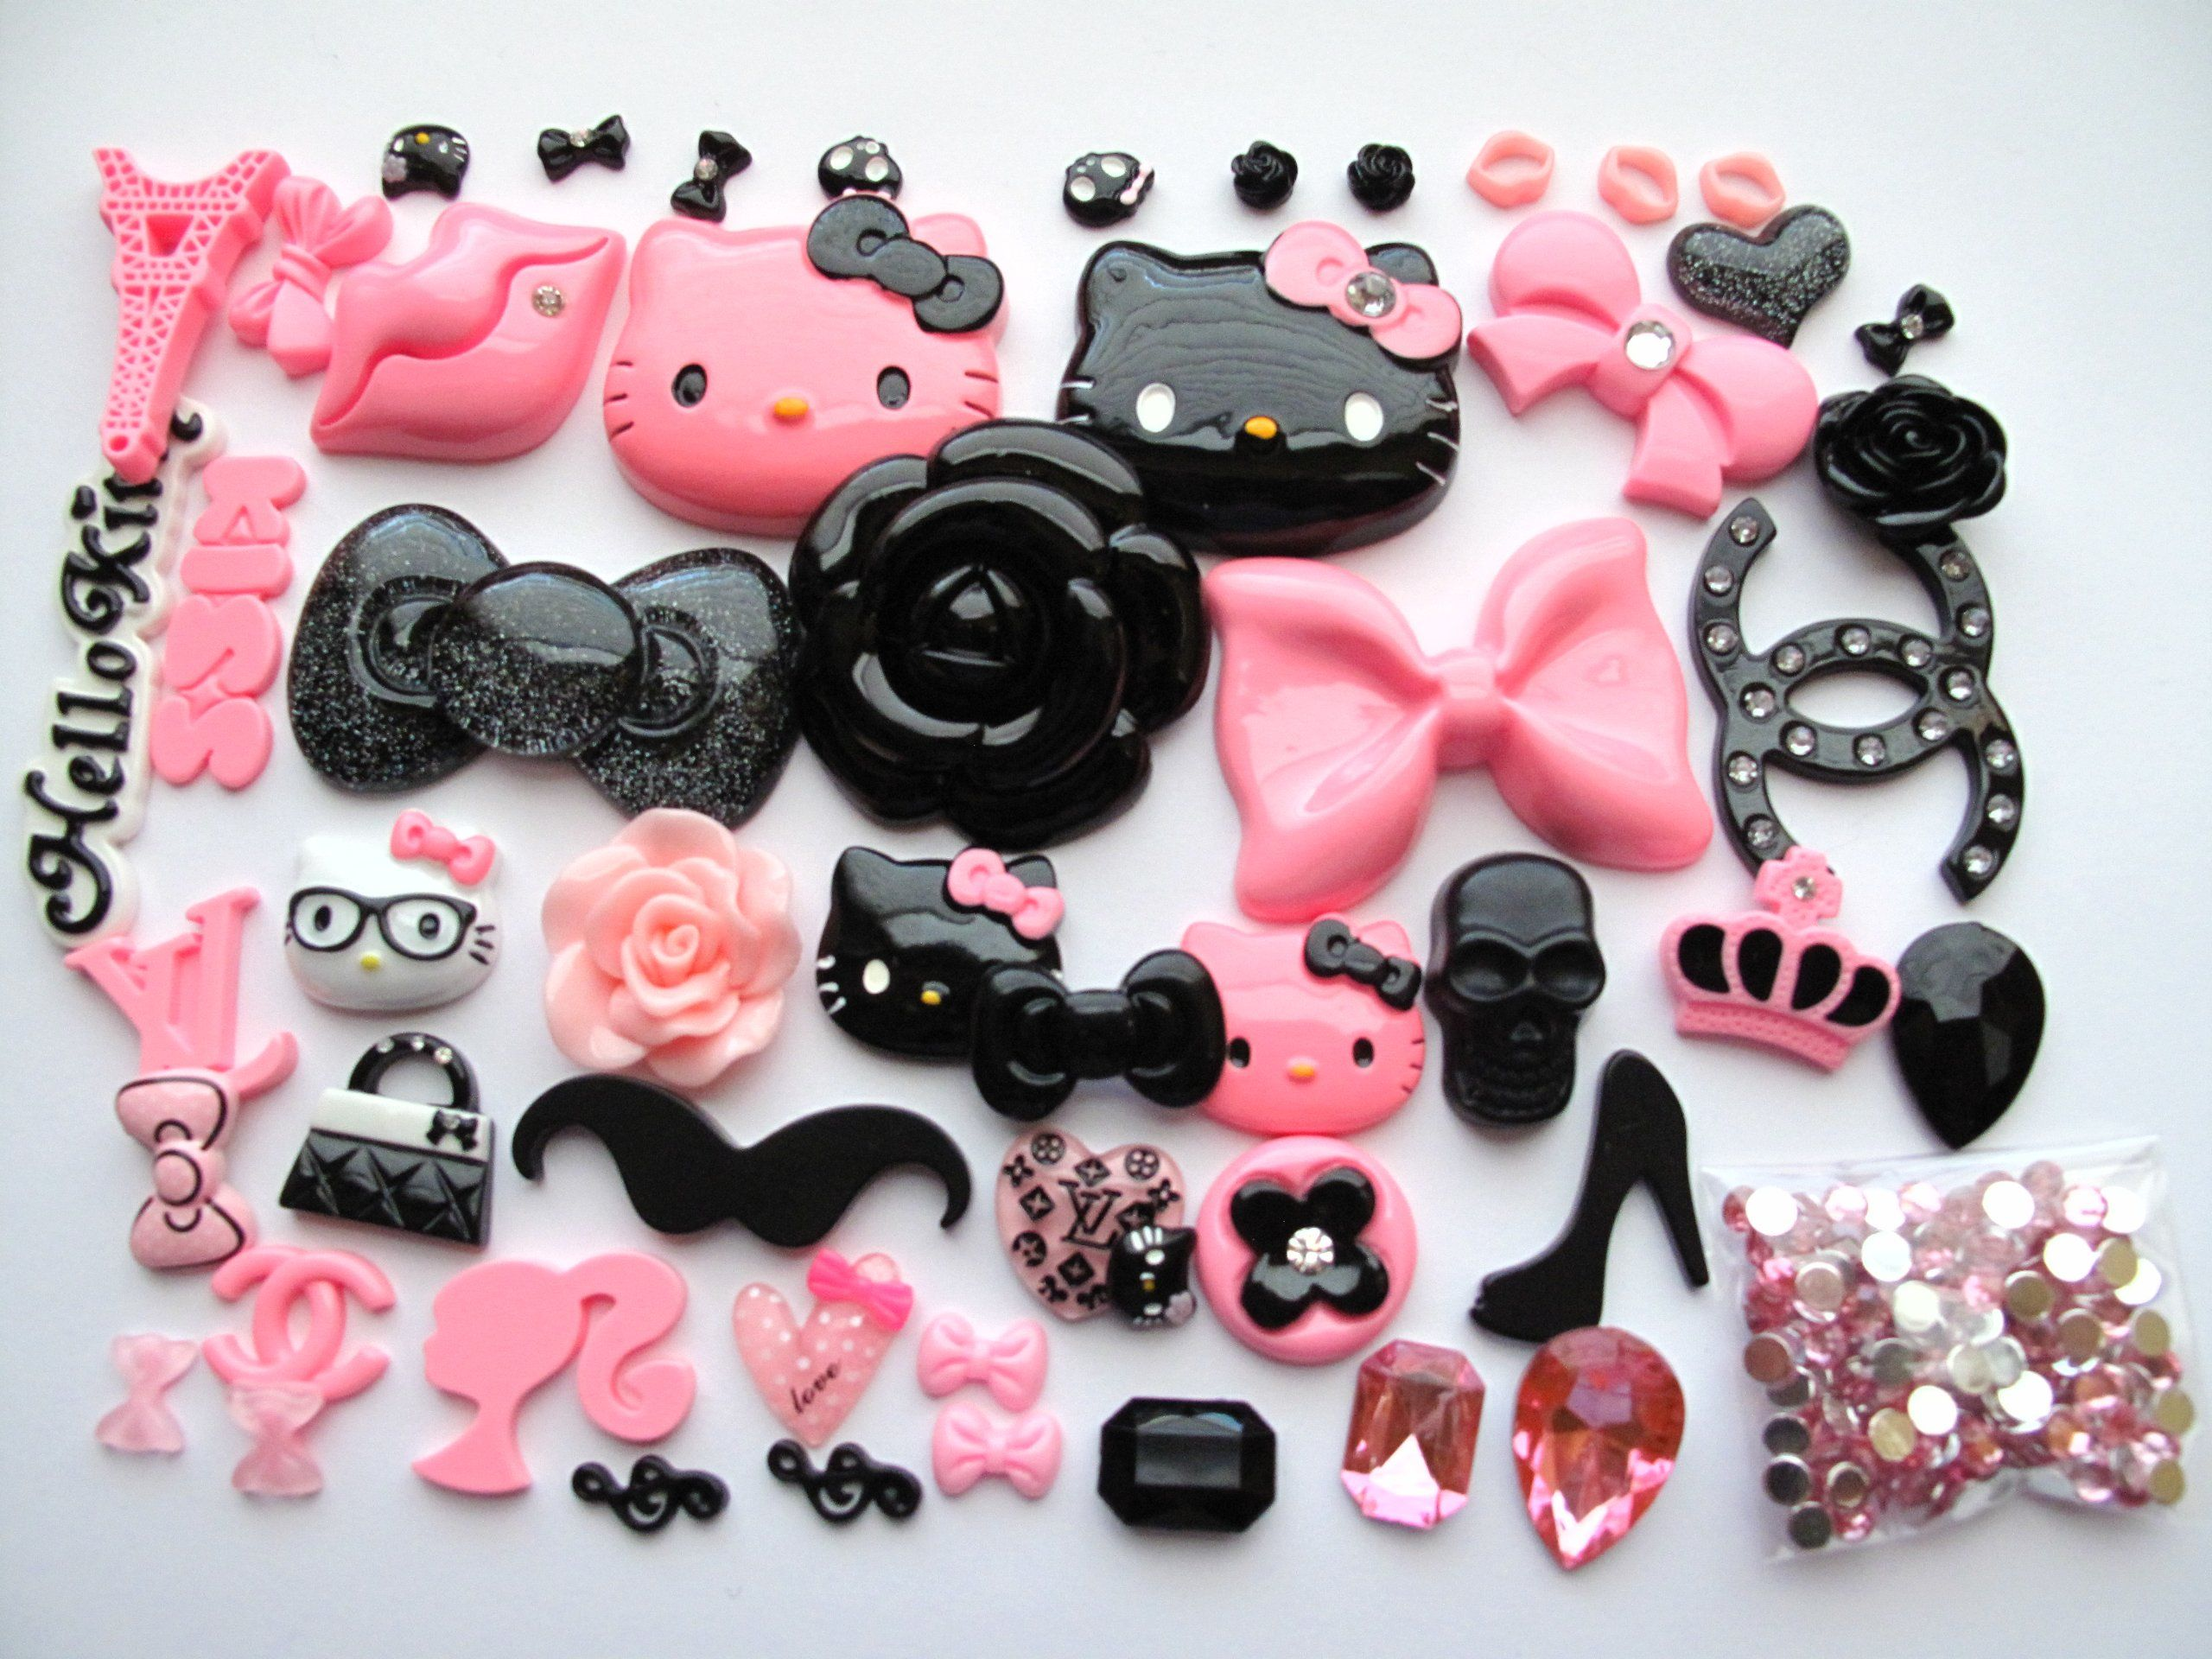 54 Mix Pink/Black HKitty Kawaii Bling Bling Flat Back Resin Cabochon Deco Kit Cell Phone:Amazon:Cell Phones & Accessories